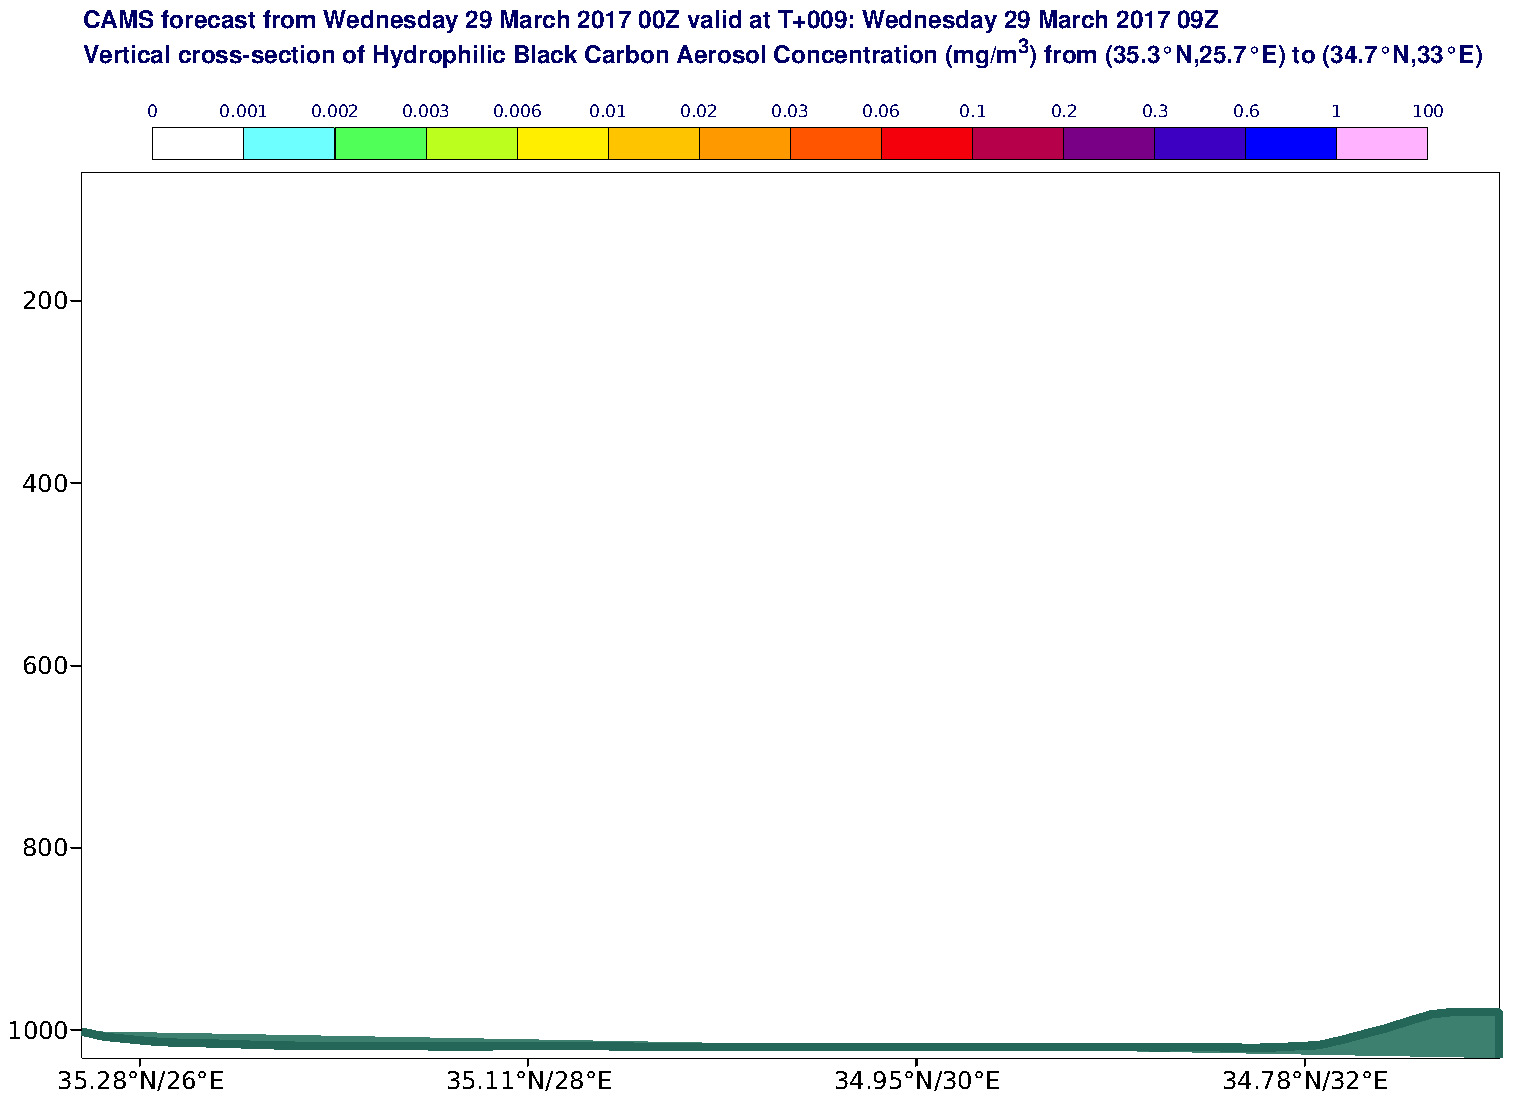 Vertical cross-section of Hydrophilic Black Carbon Aerosol Concentration (mg/m3) valid at T9 - 2017-03-29 09:00